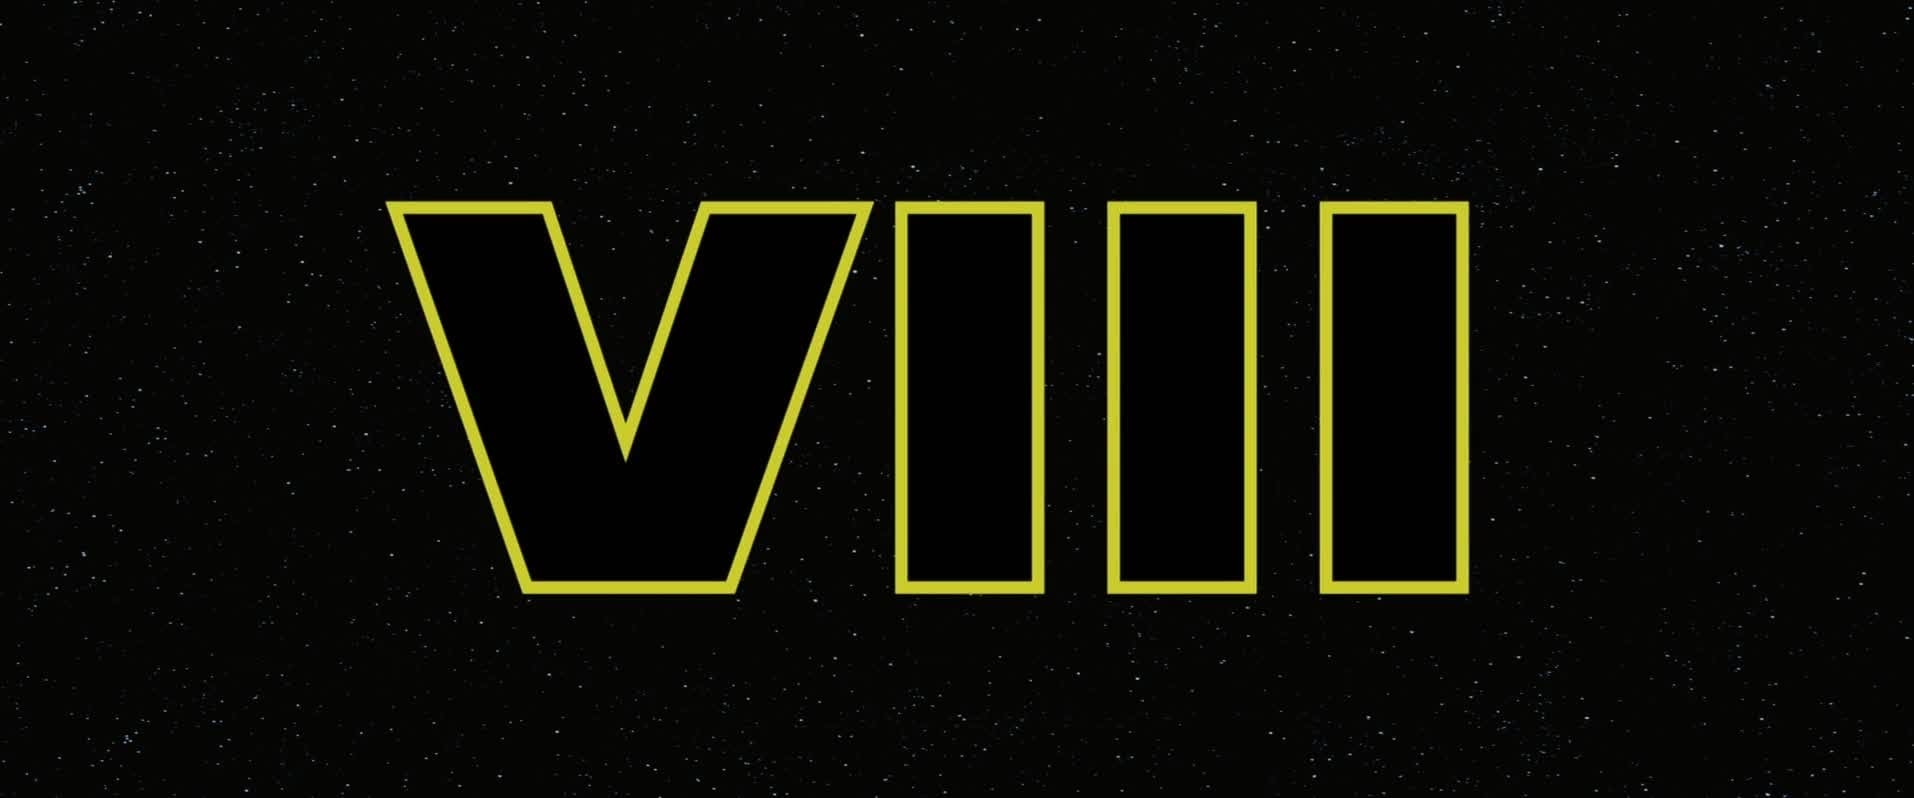 Episode  VIII Announcement